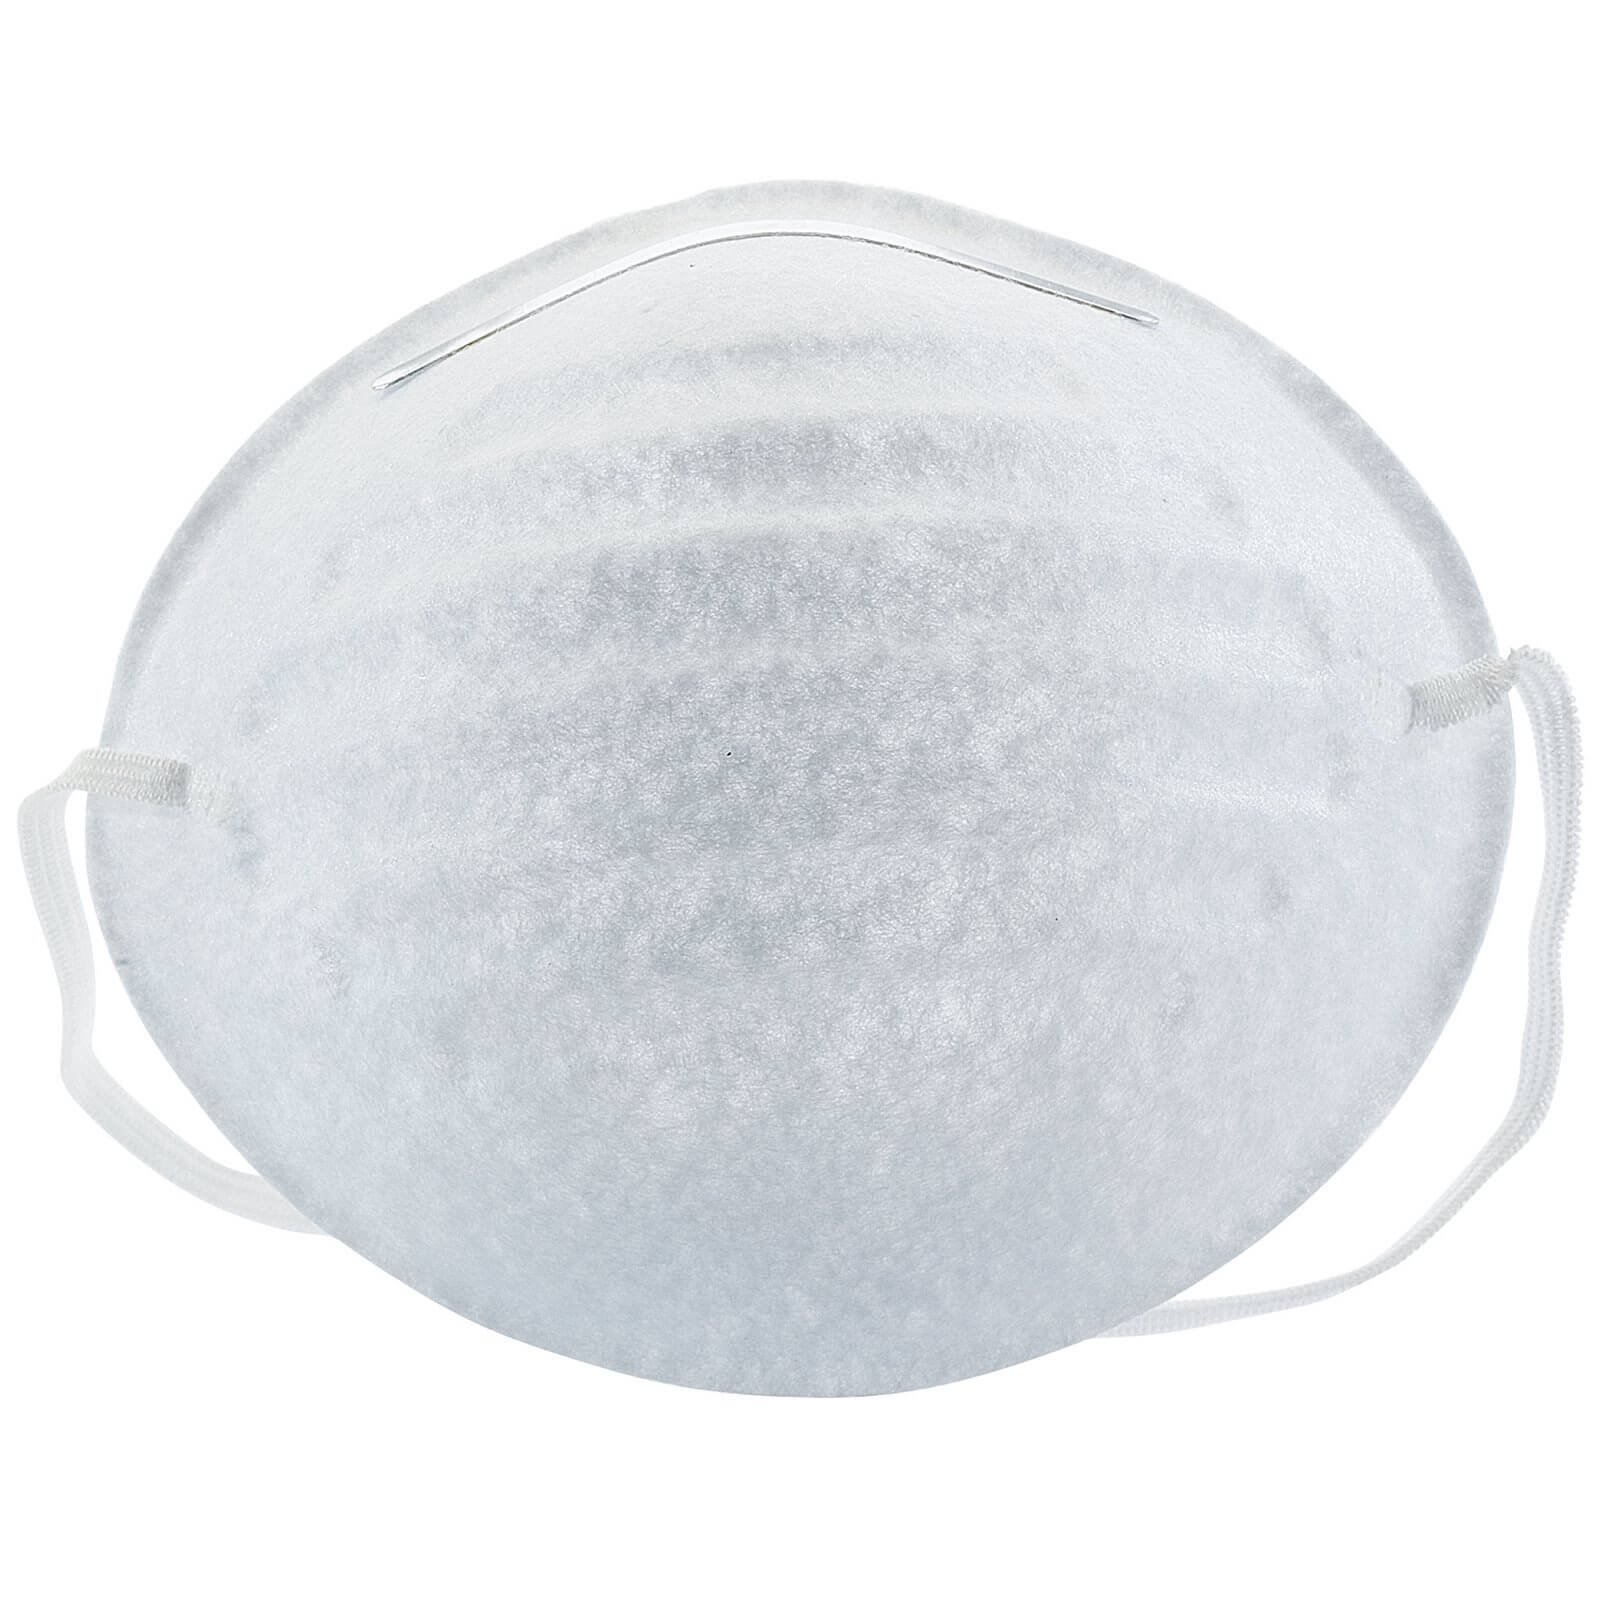 Image of Draper Disposable Nuisance Dust Masks Pack of 5